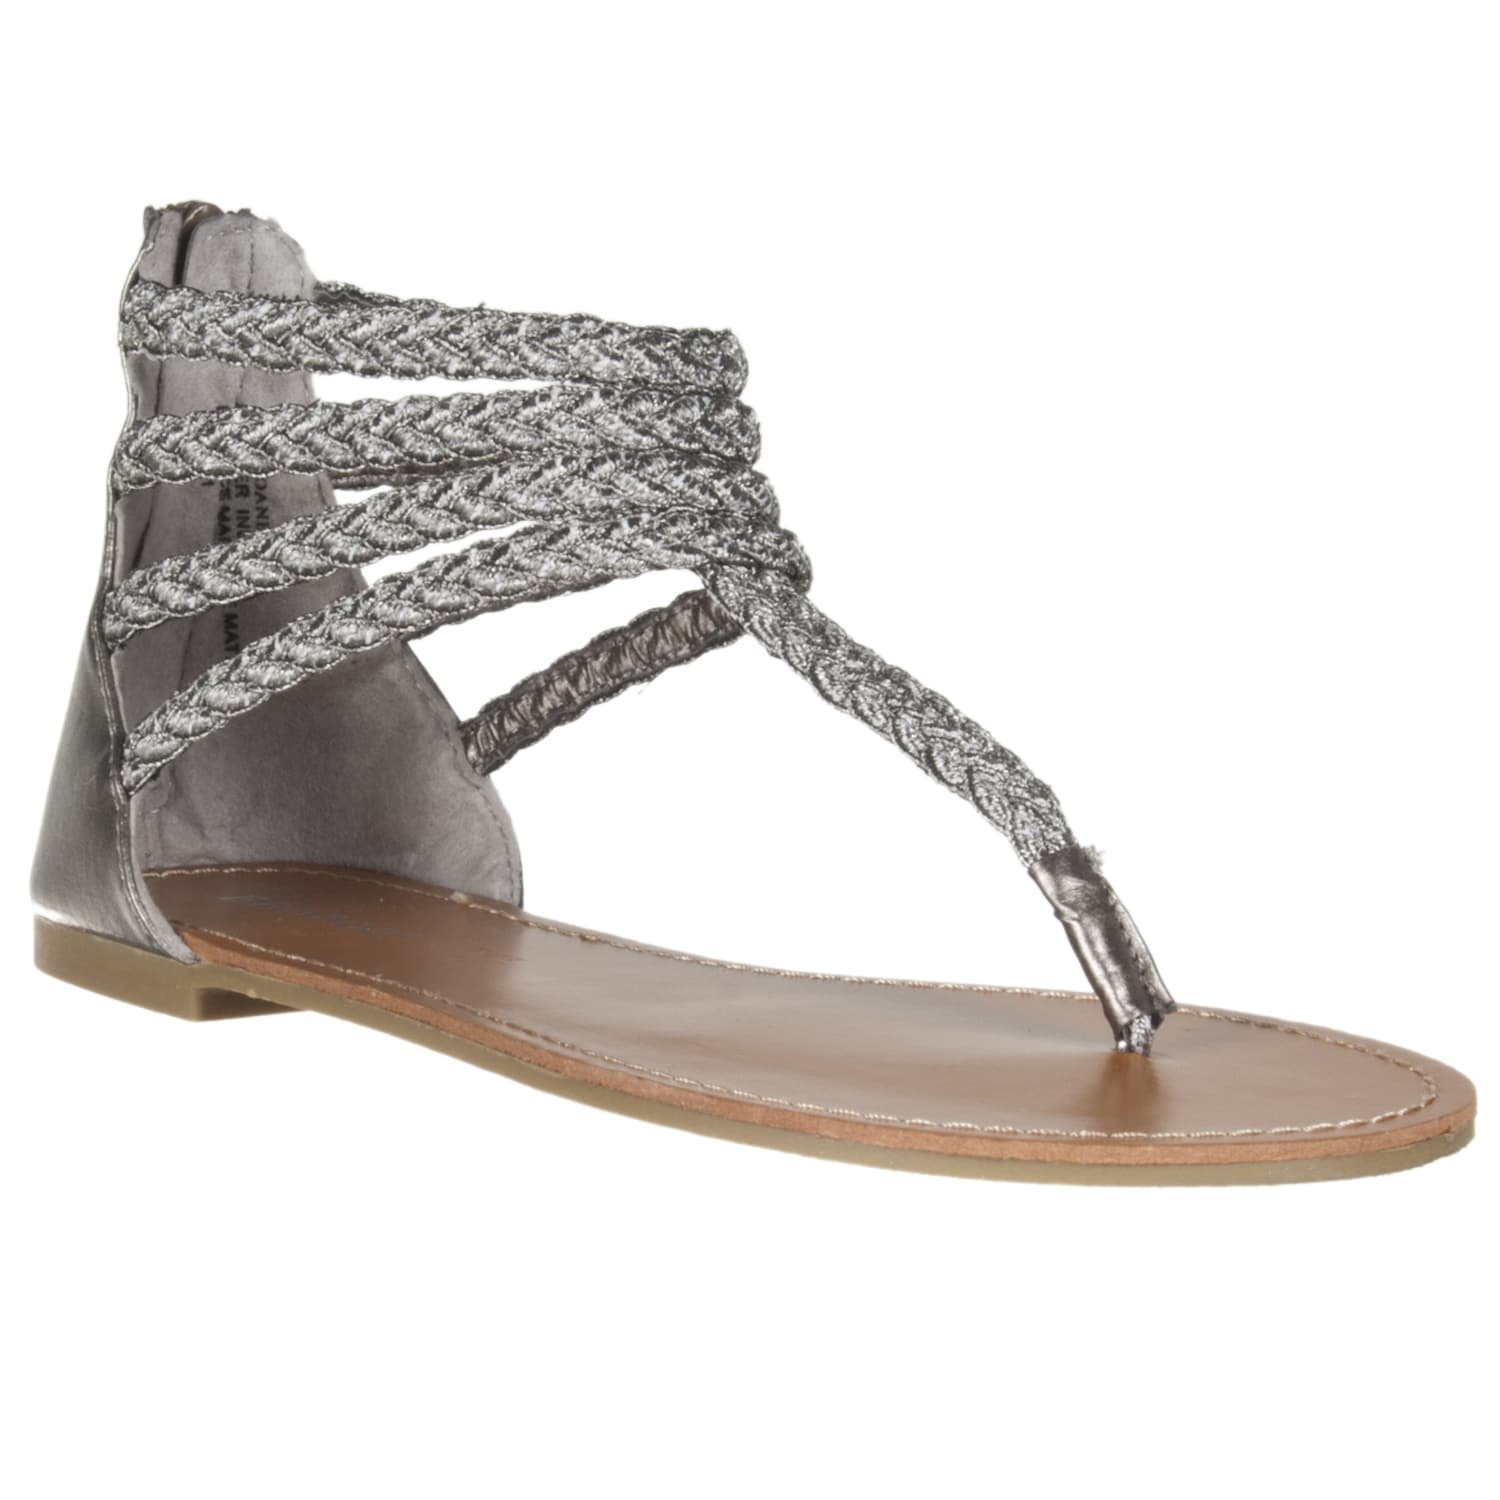 Riverberry Women's 'Sloane' Pewter Gladiator Sandal